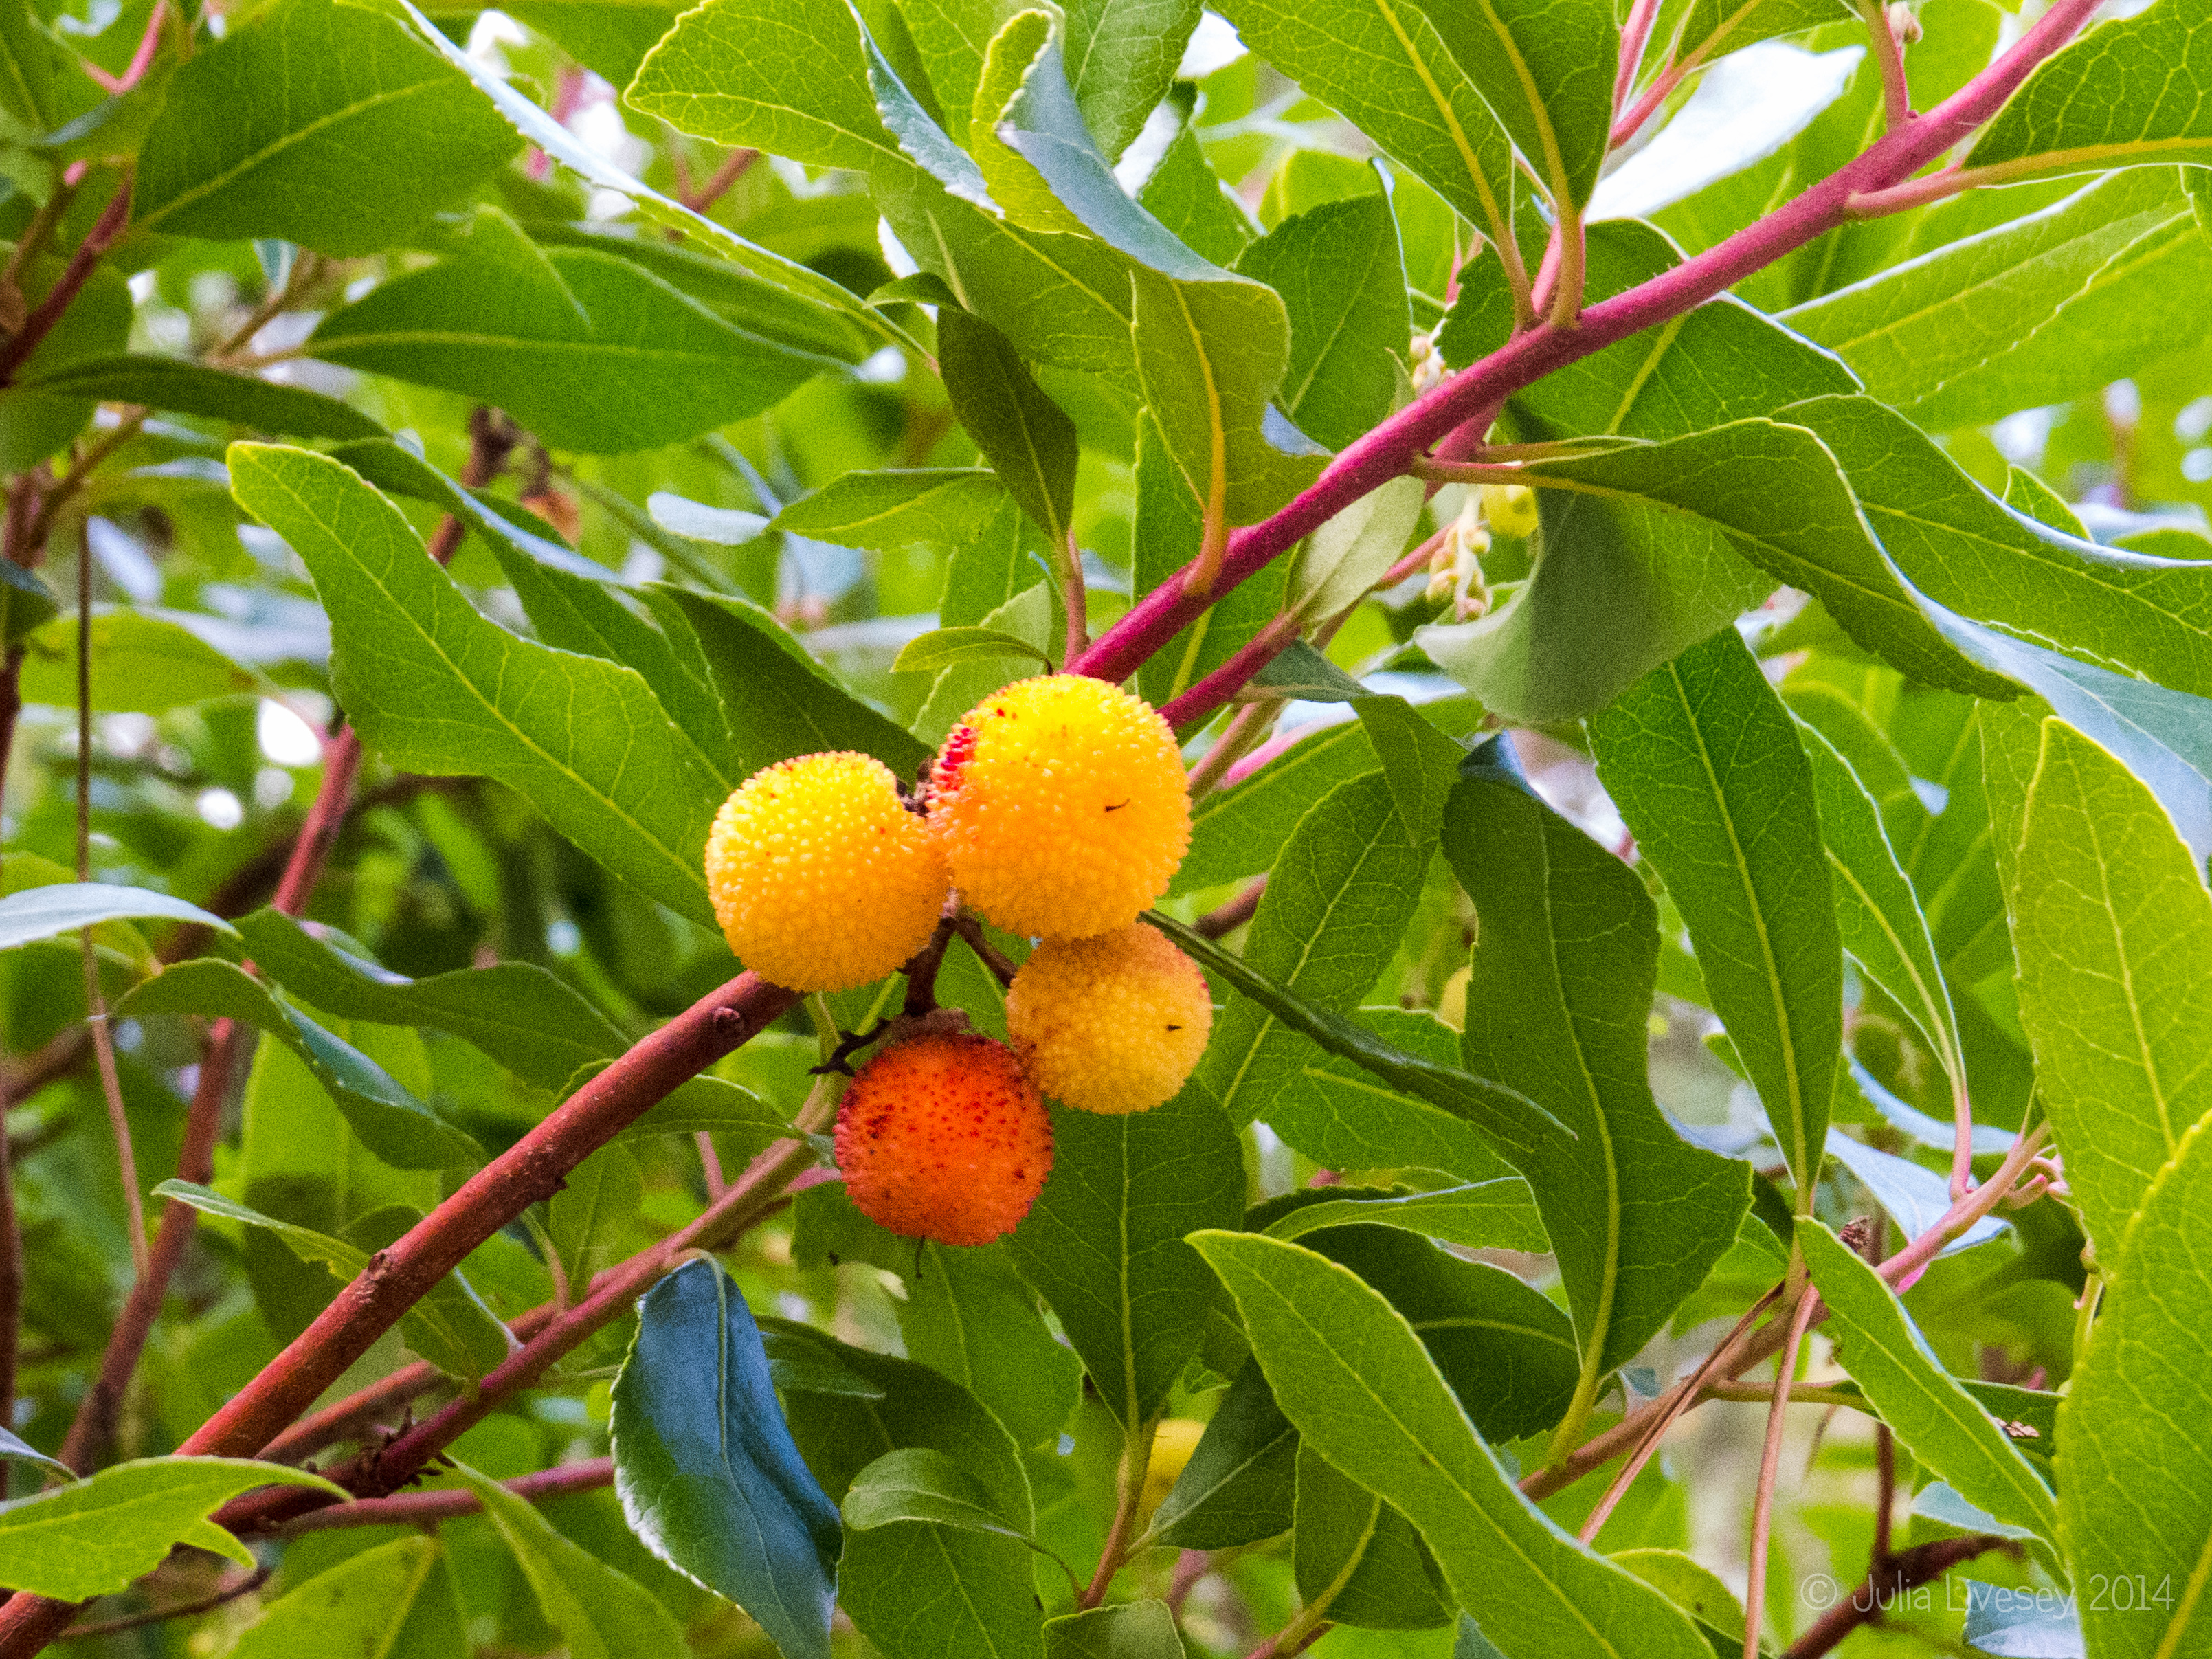 The strawberry tree is bearing fruit